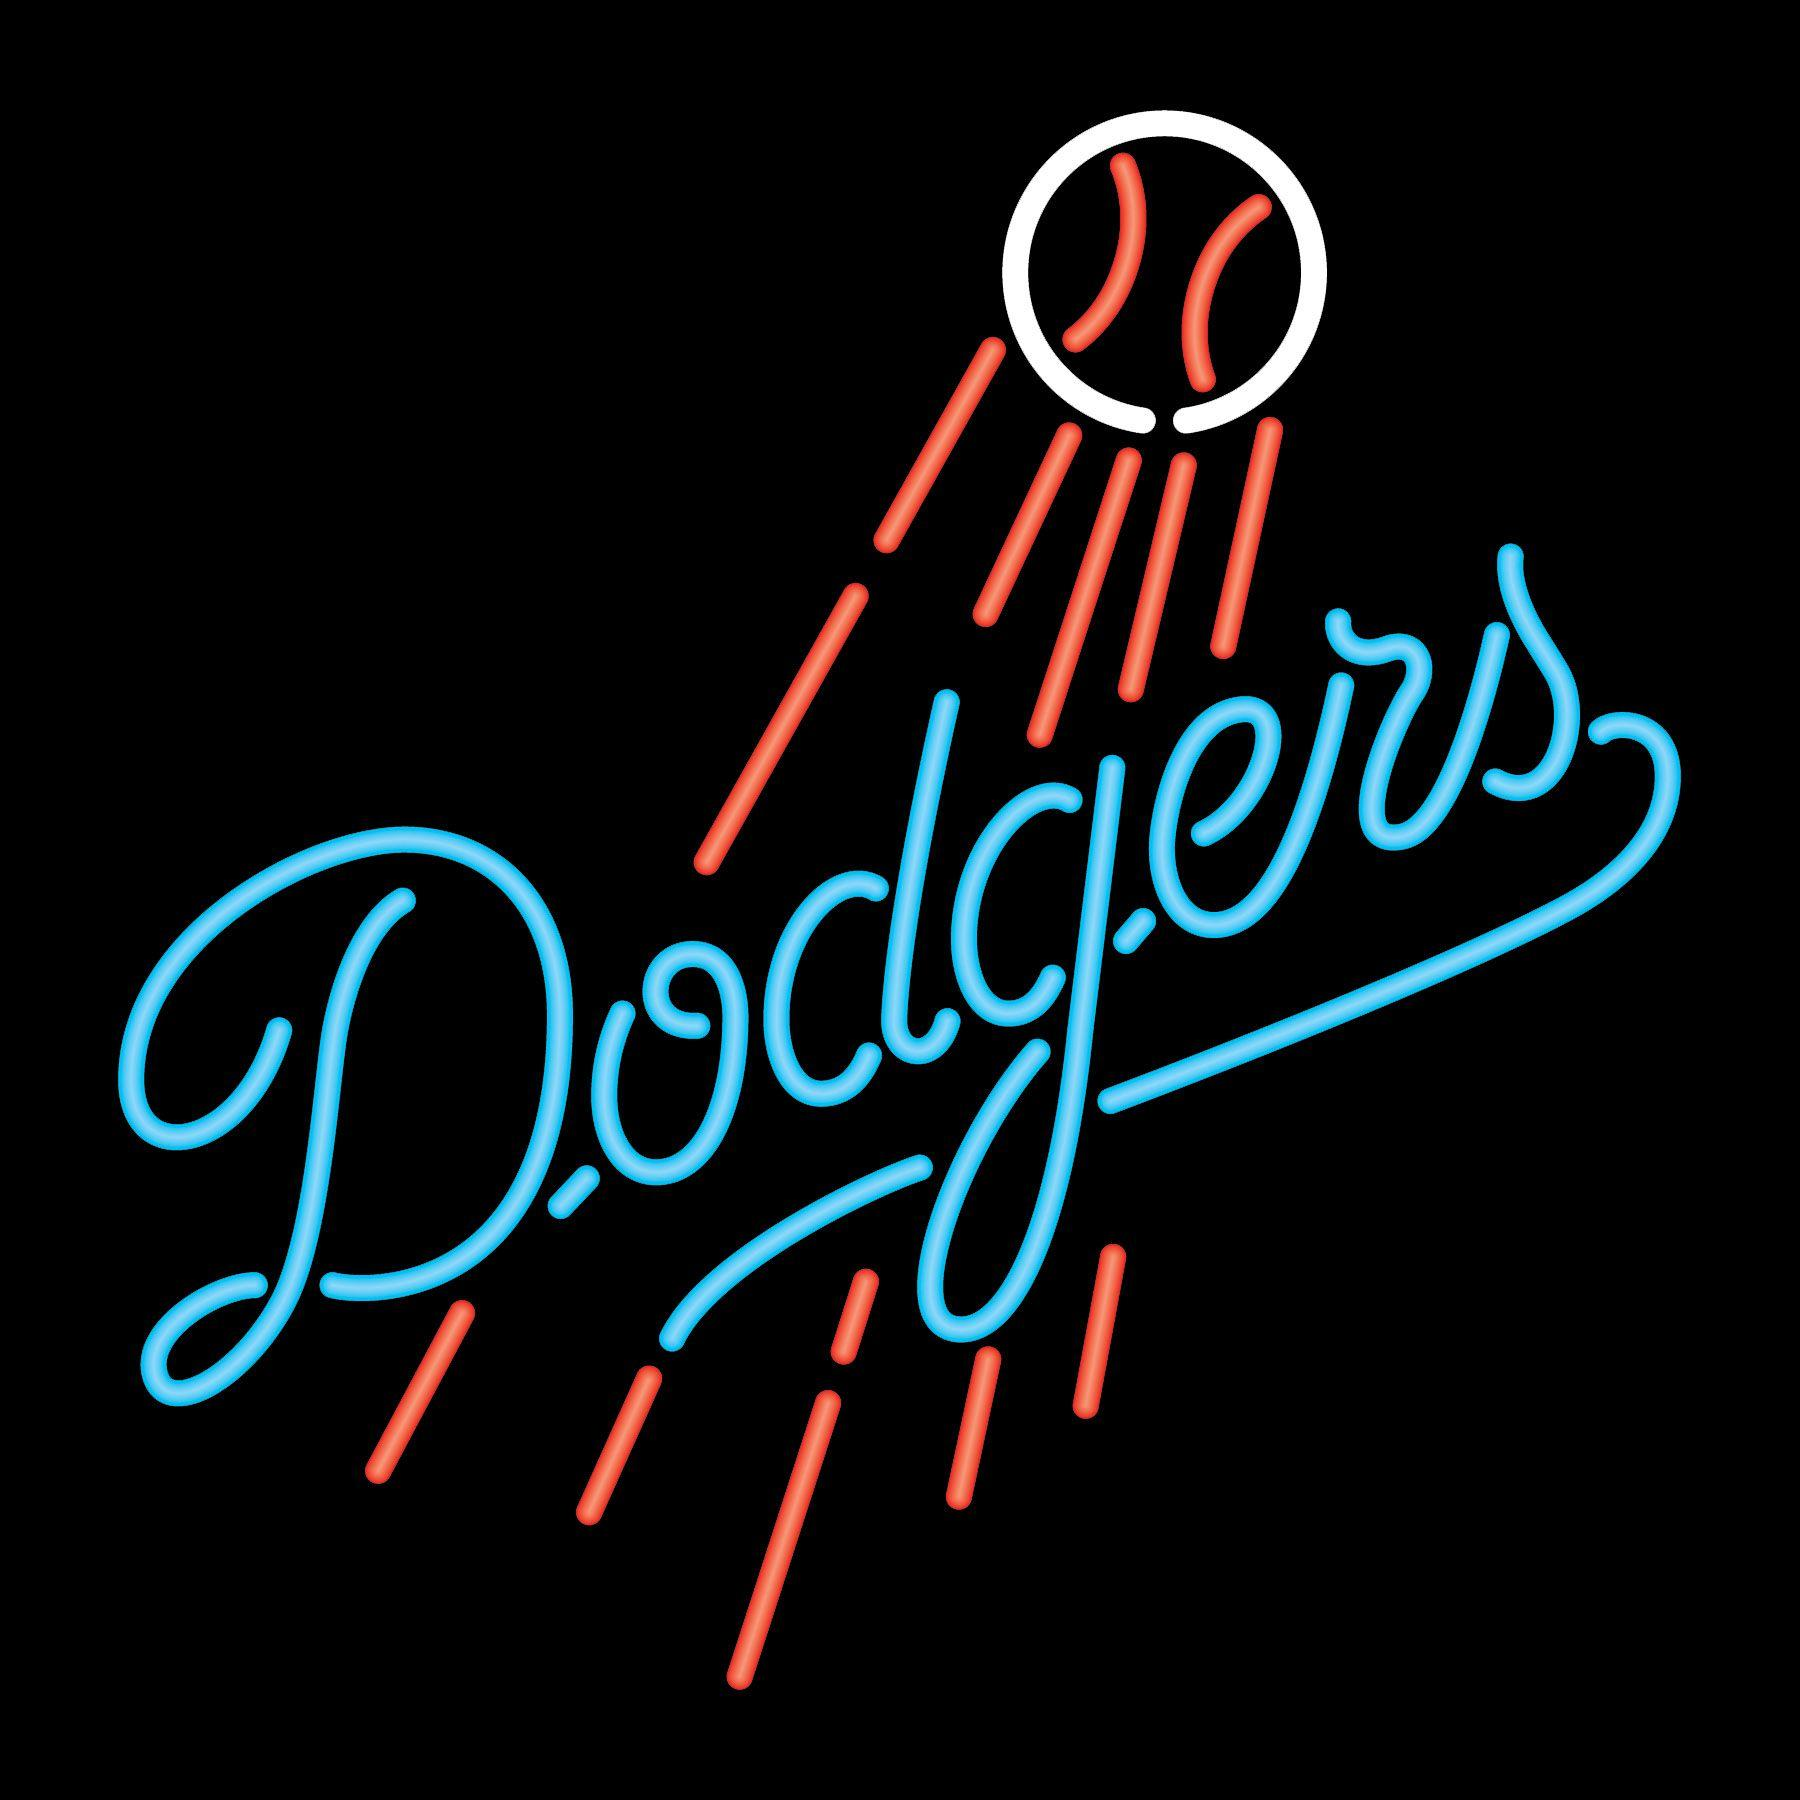 Image For > Dodgers Wallpapers